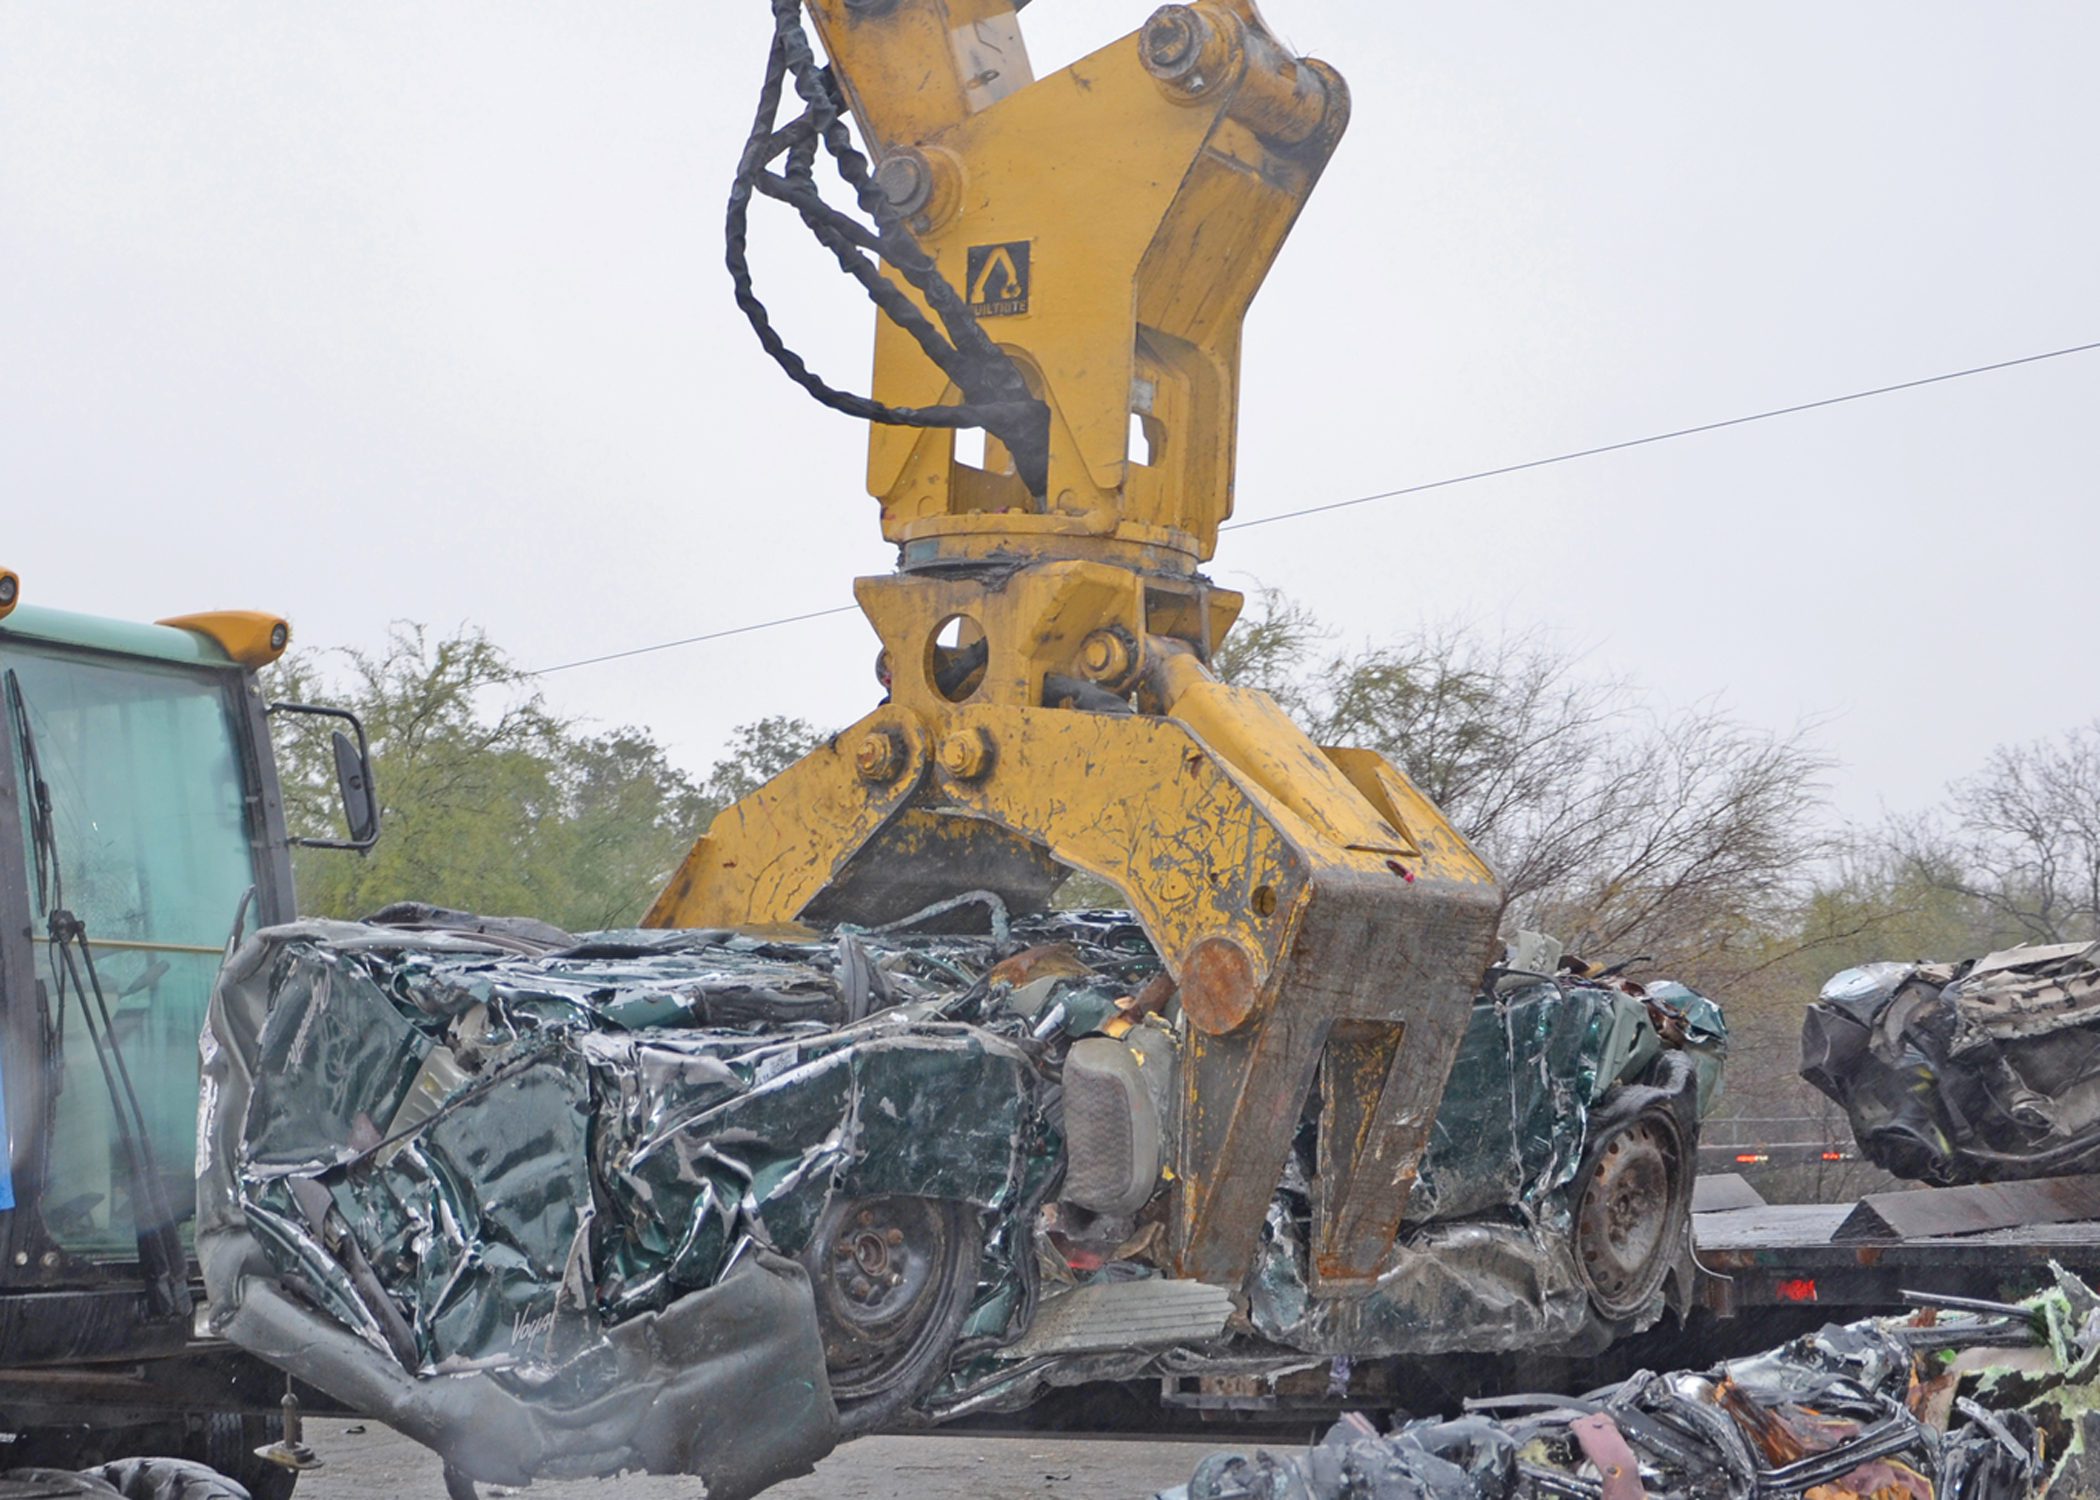 2/3 Tine Bypass Scrap Grapple | Builtrite Handlers & Attachments